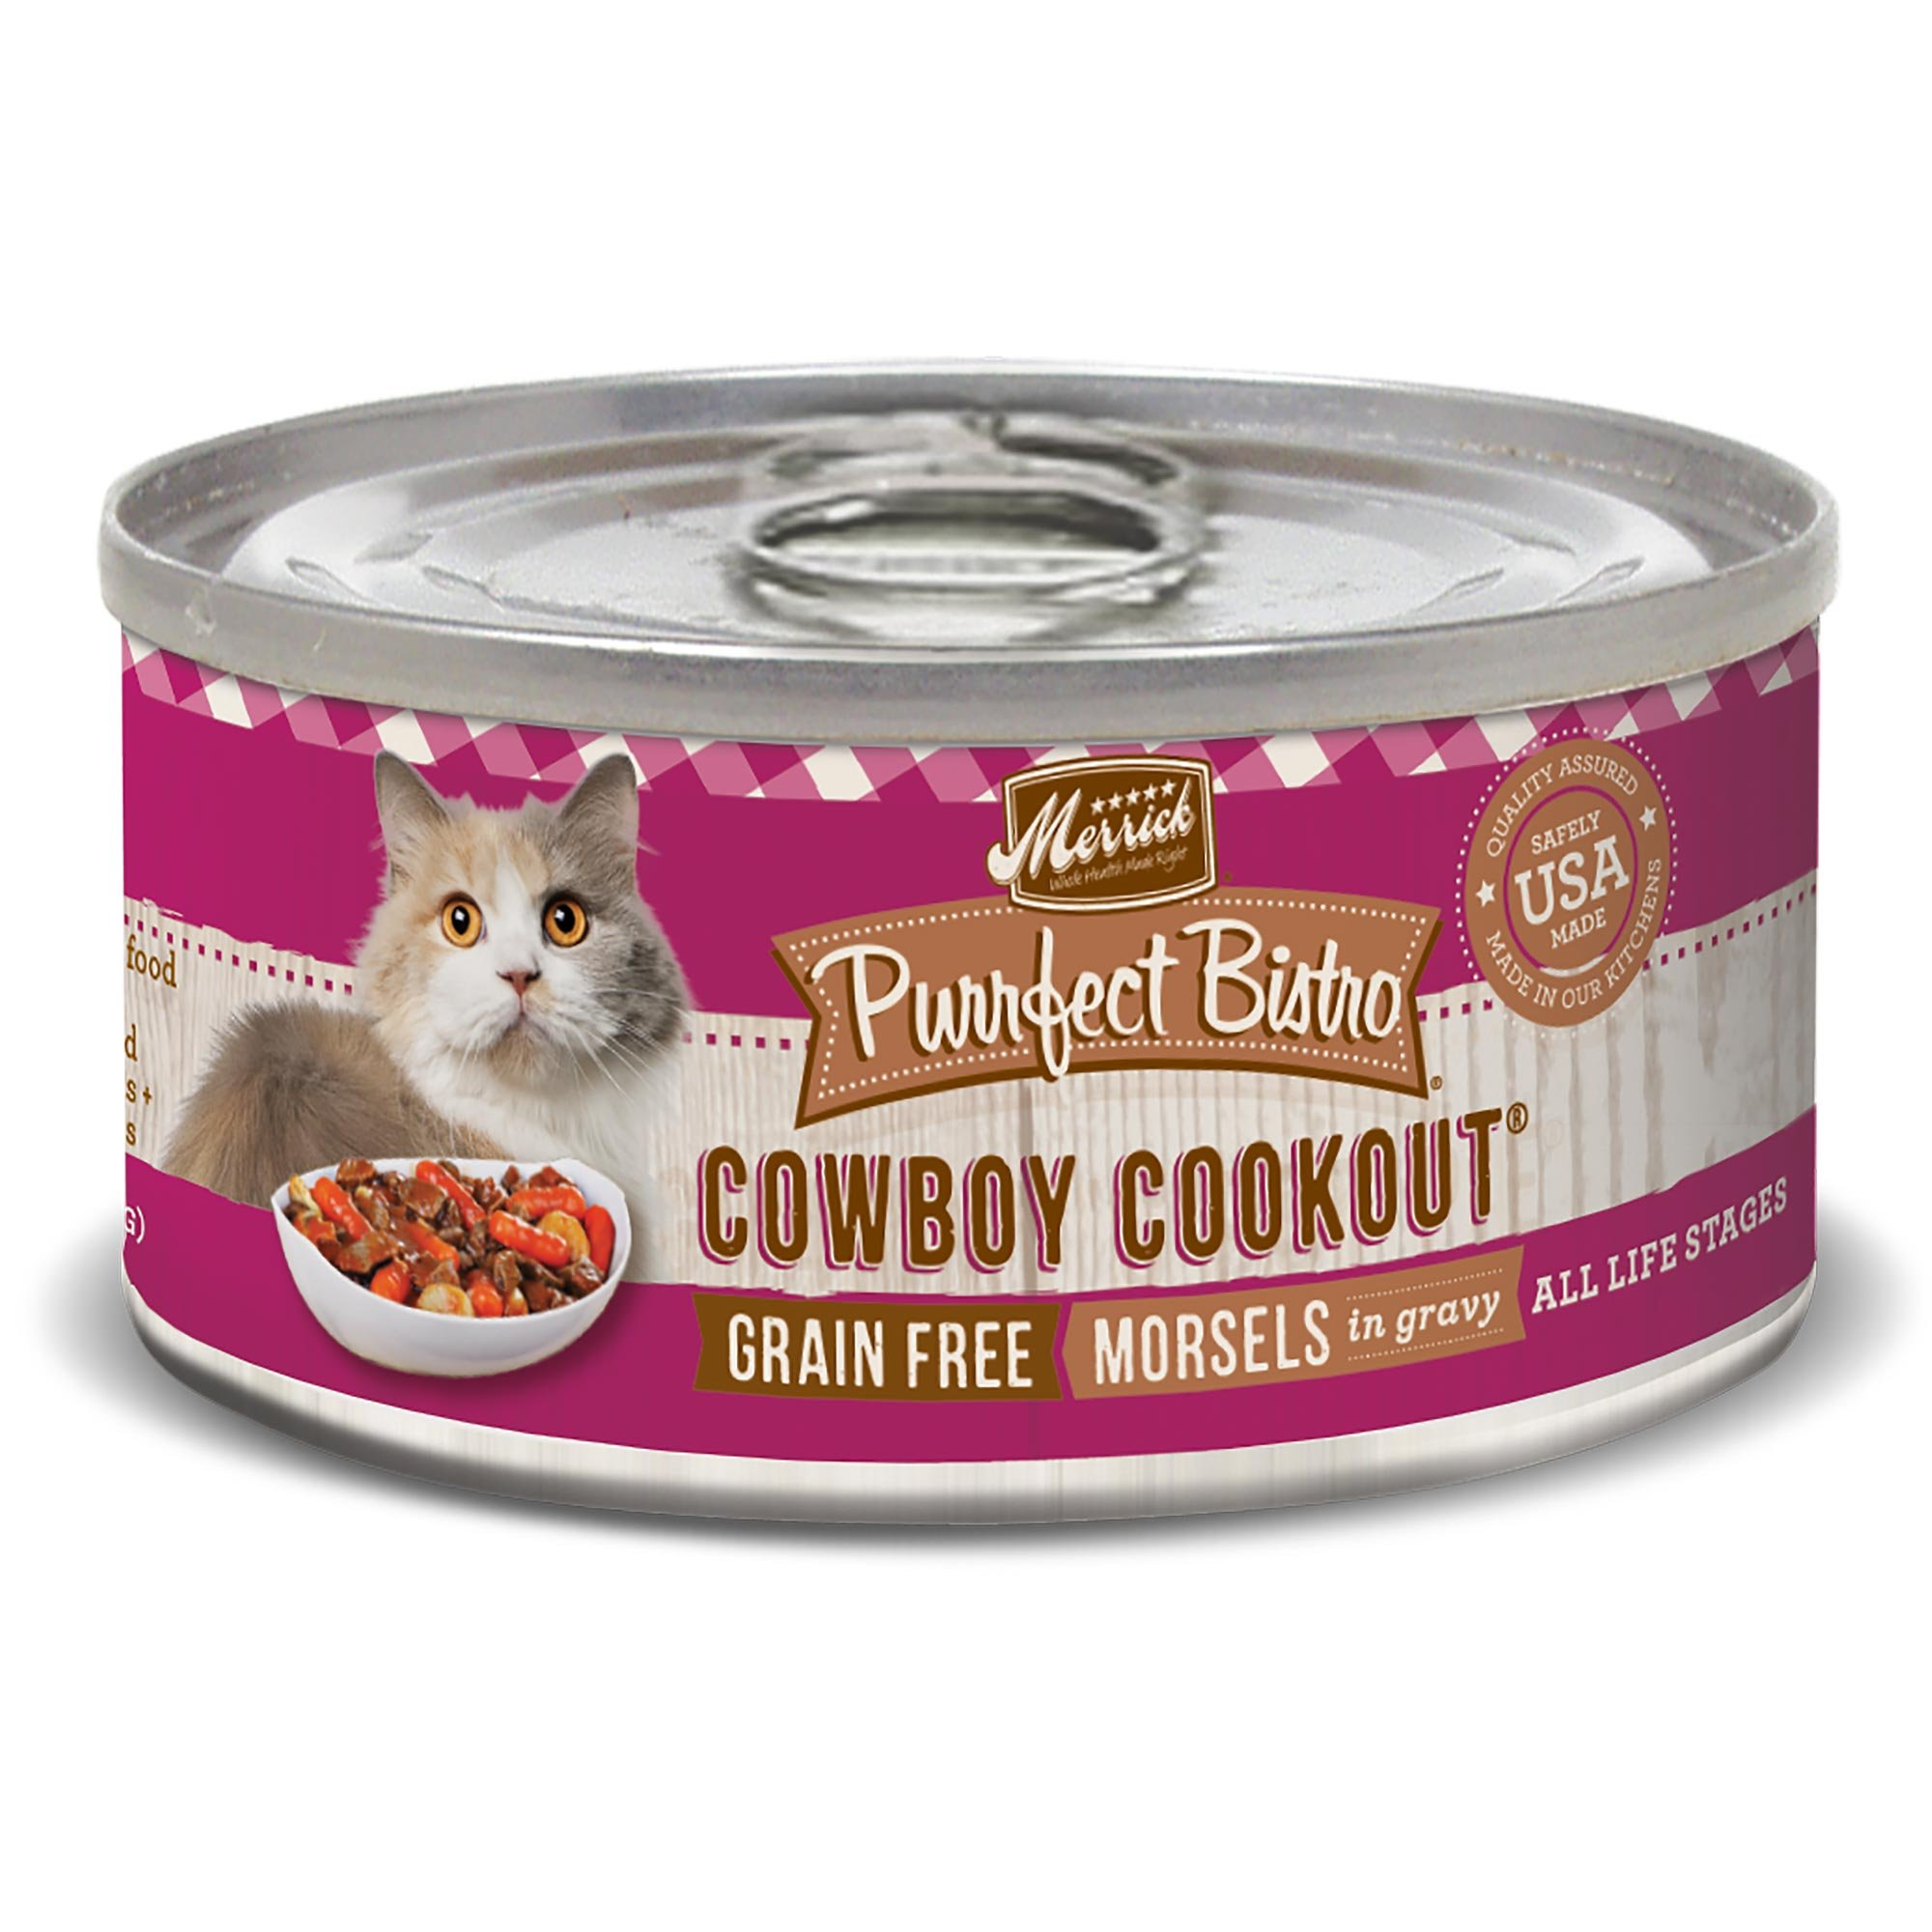 Merrick Purrfect Bistro Grain Free, 5.5 oz, Cowboy Cookout - Pack of 24  by Merrick (Image #1)